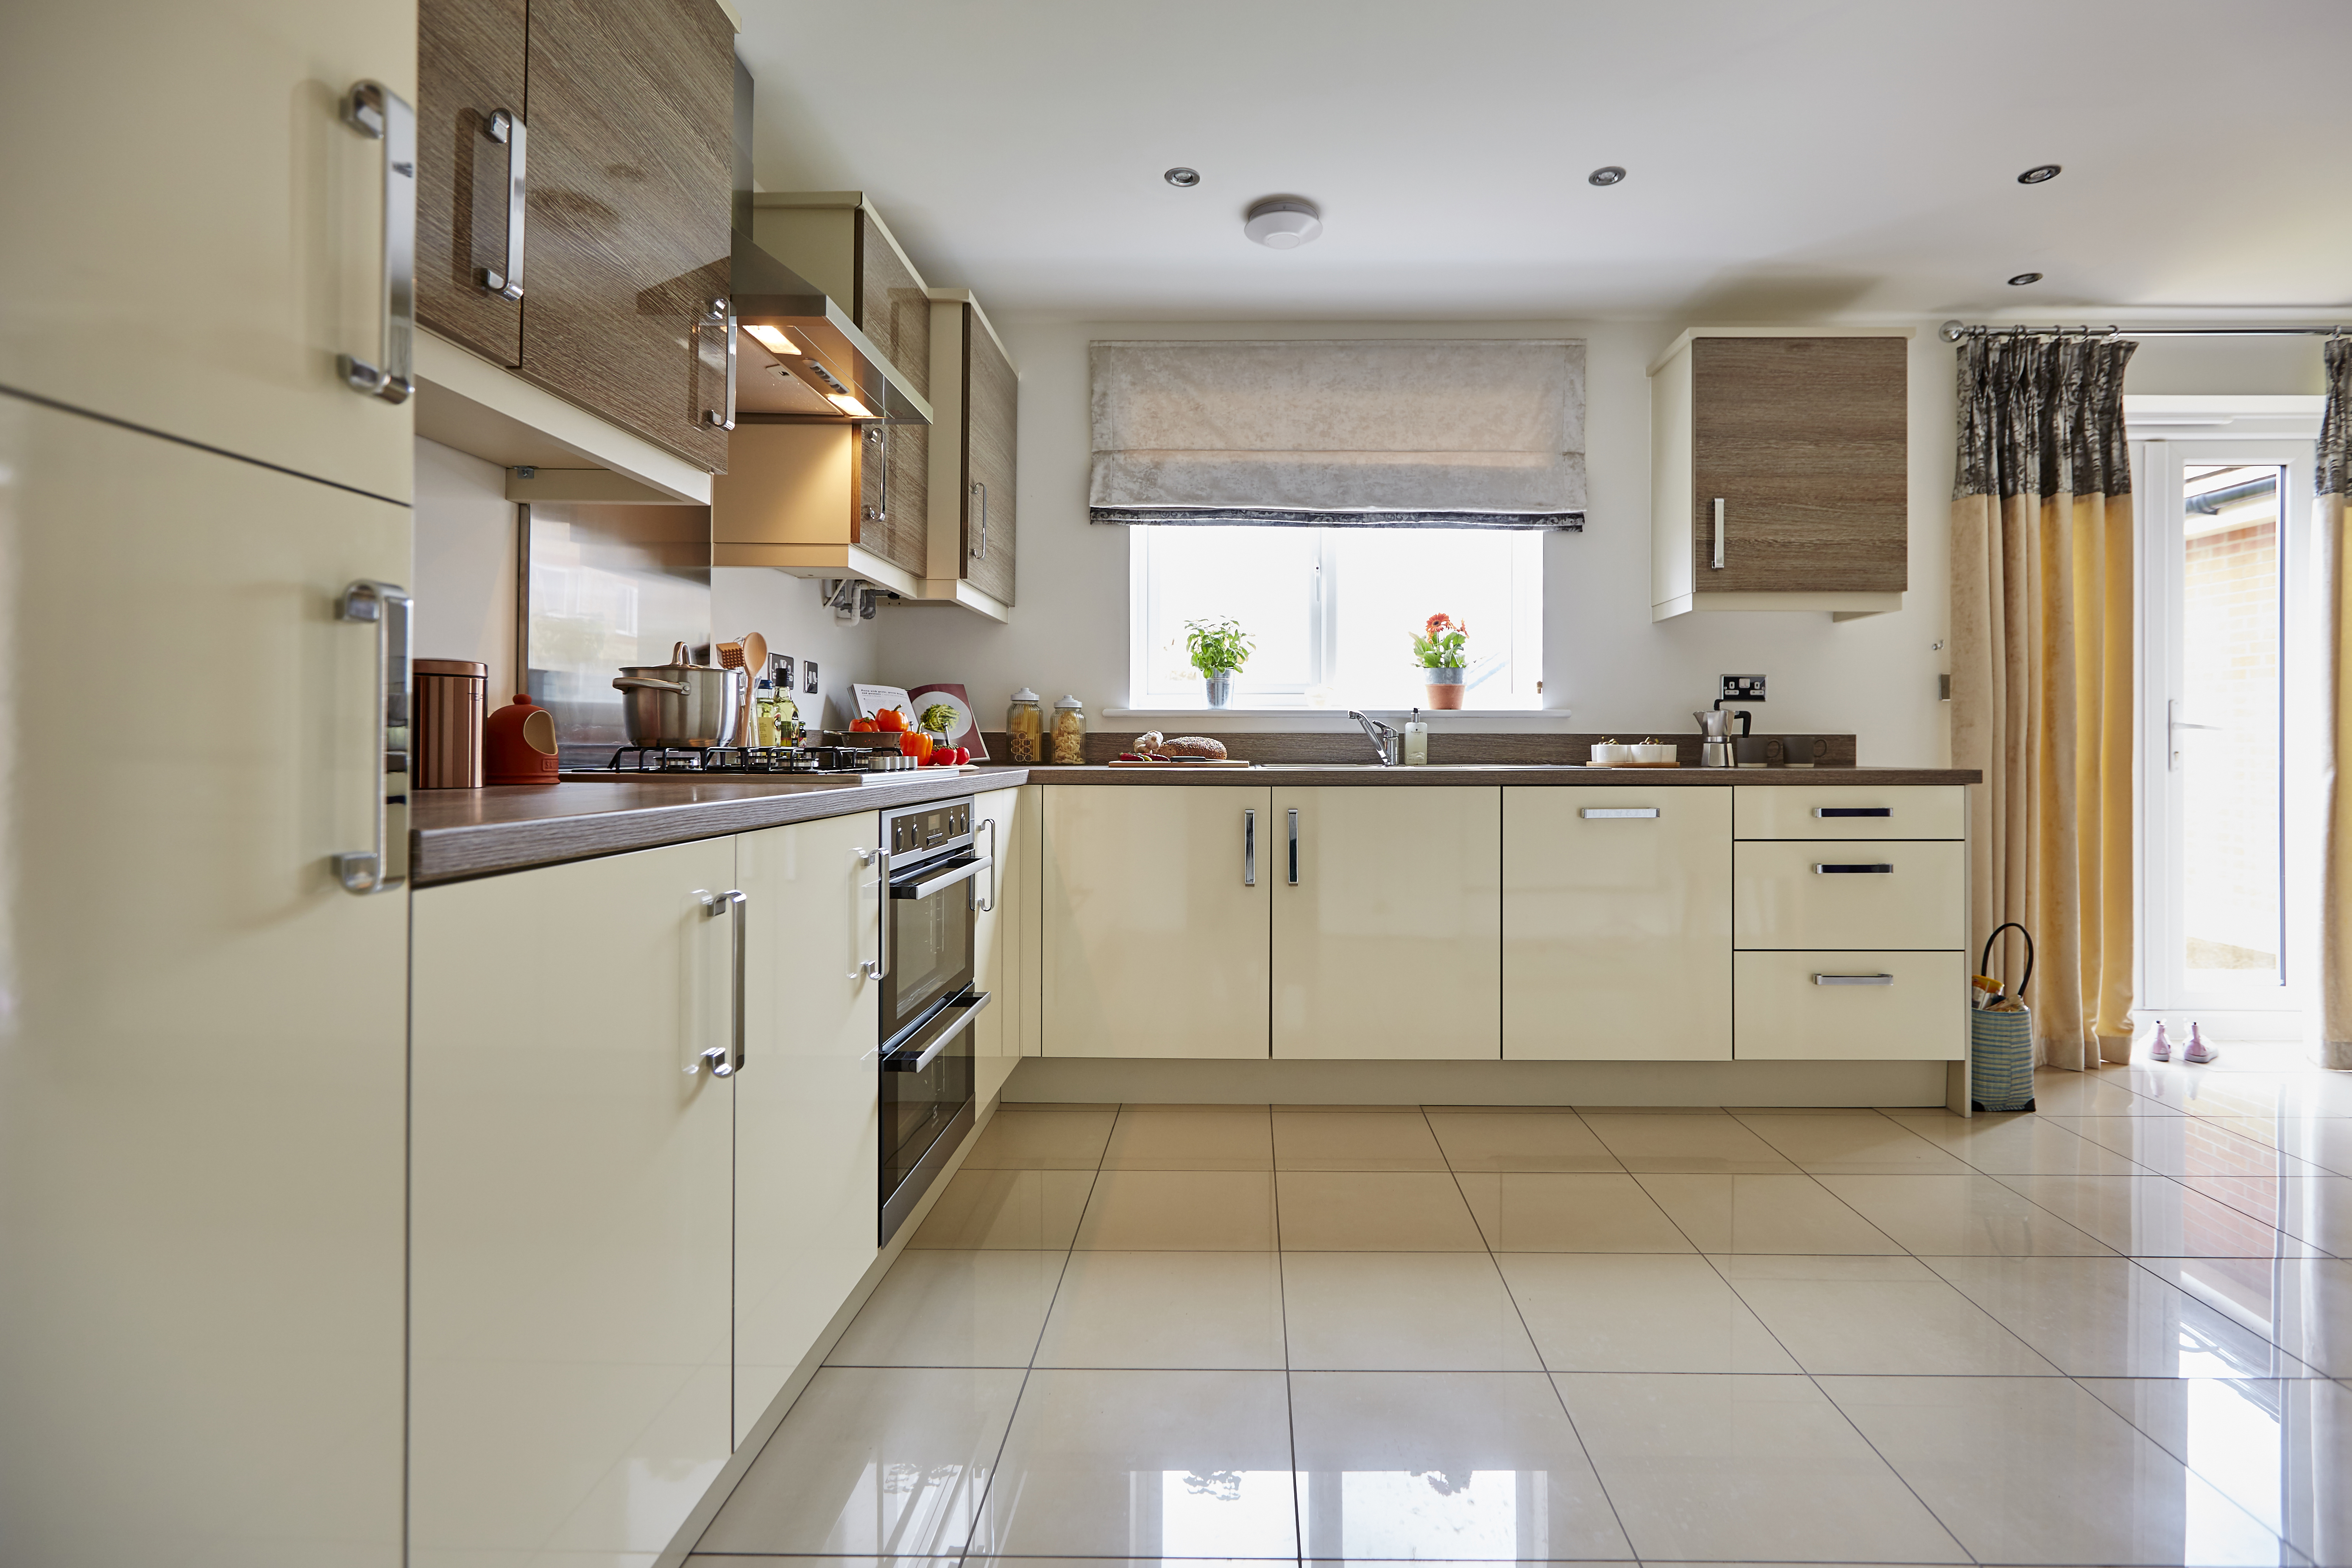 TW SWales_Kingsmead_Caerphilly_PA44_Midford_Kitchen